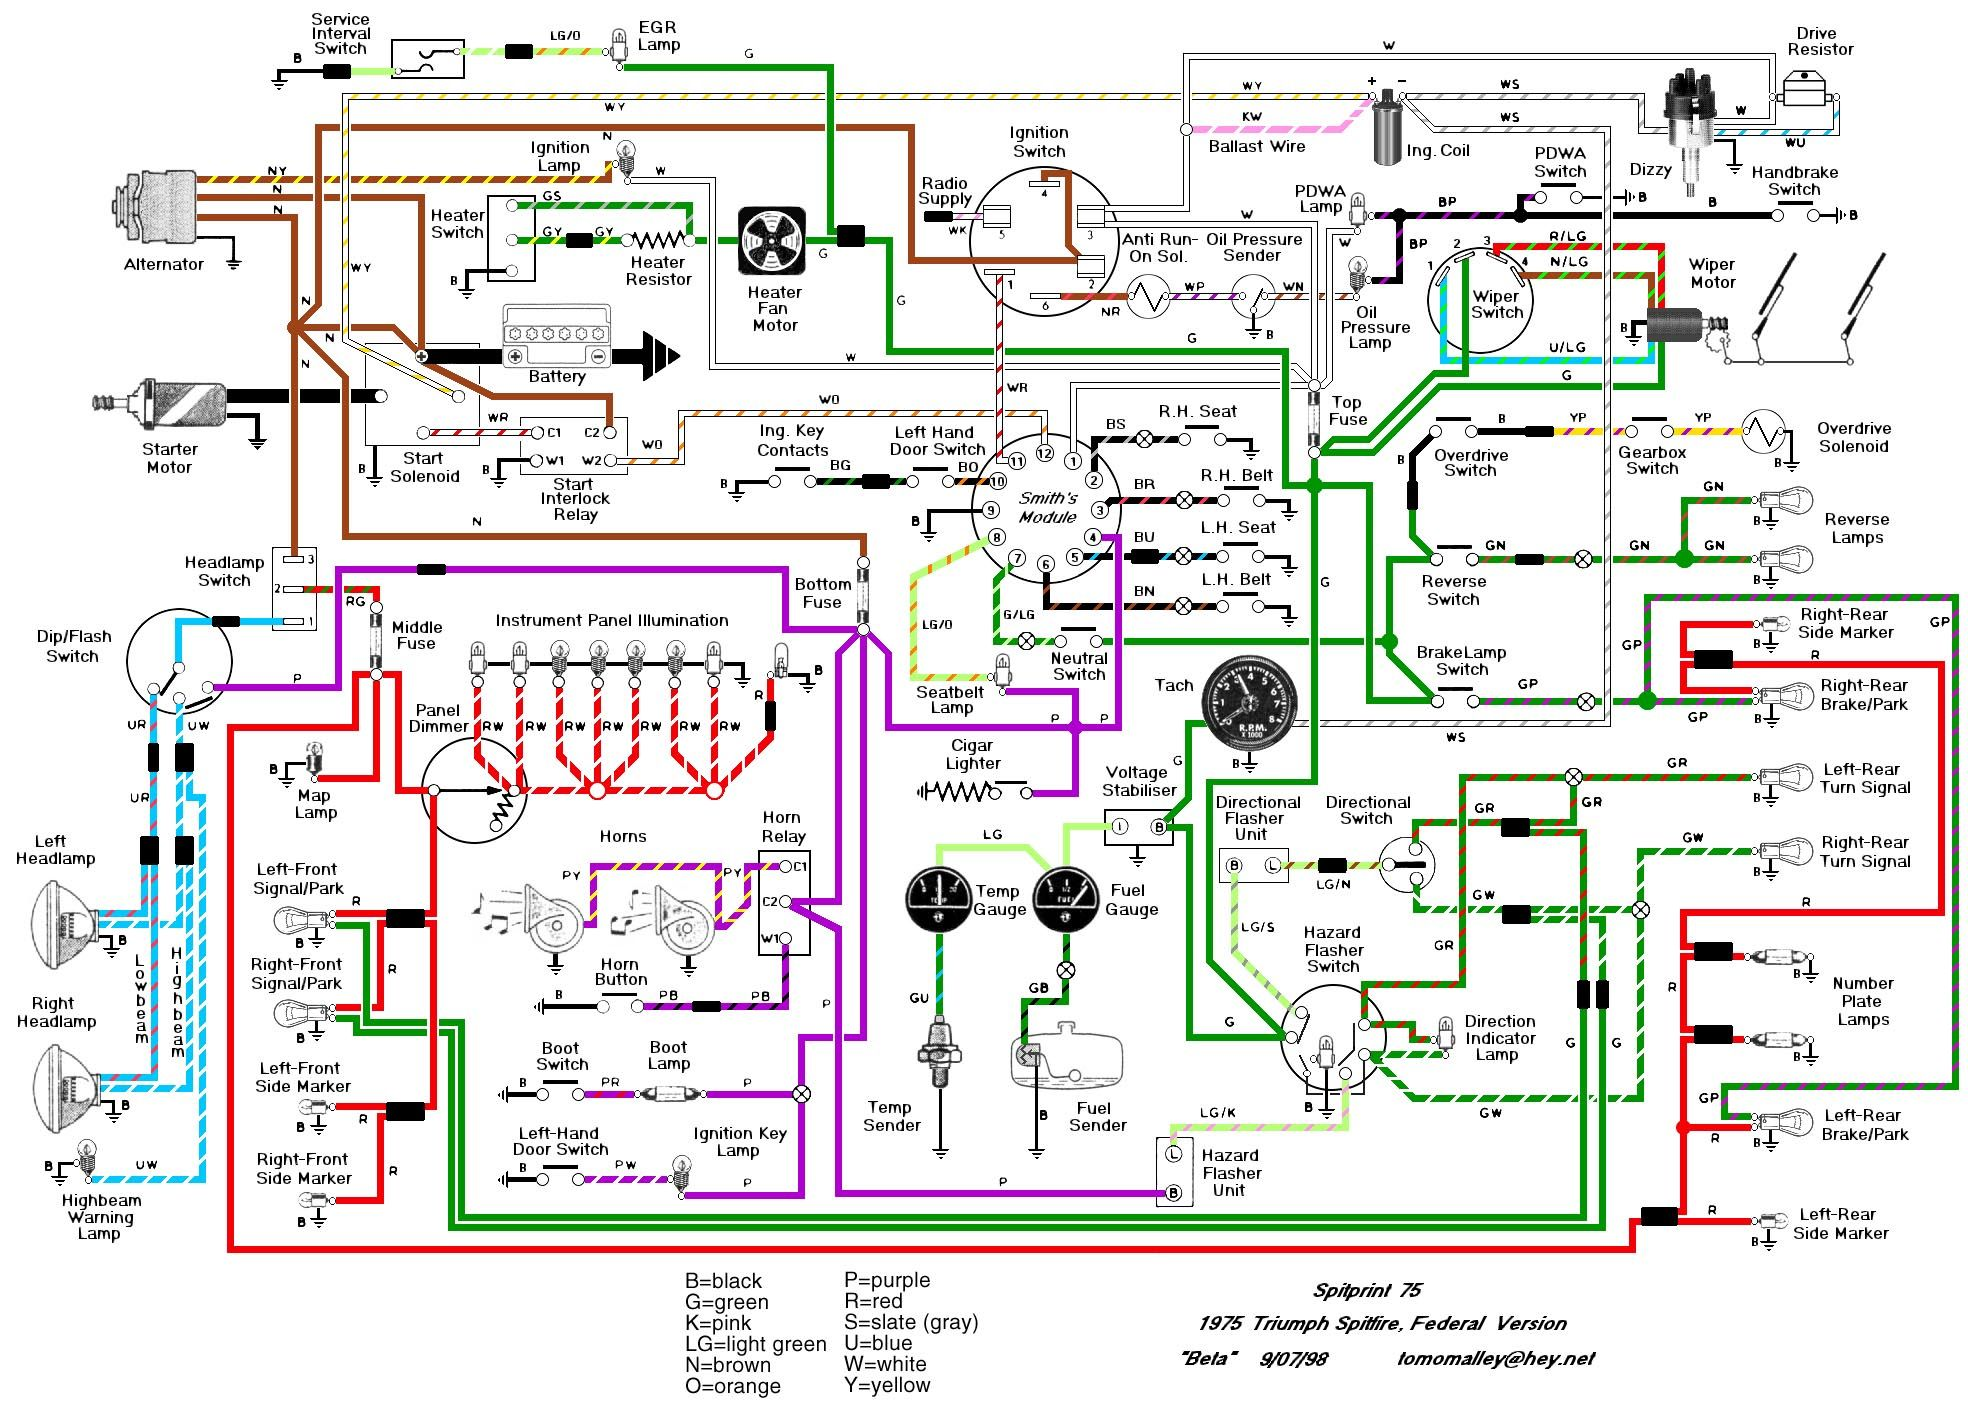 be29e78a9b223a9820997f058b4332e6 mgb wiring diagram www automanualparts com mgb wiring mgb engine diagram at aneh.co